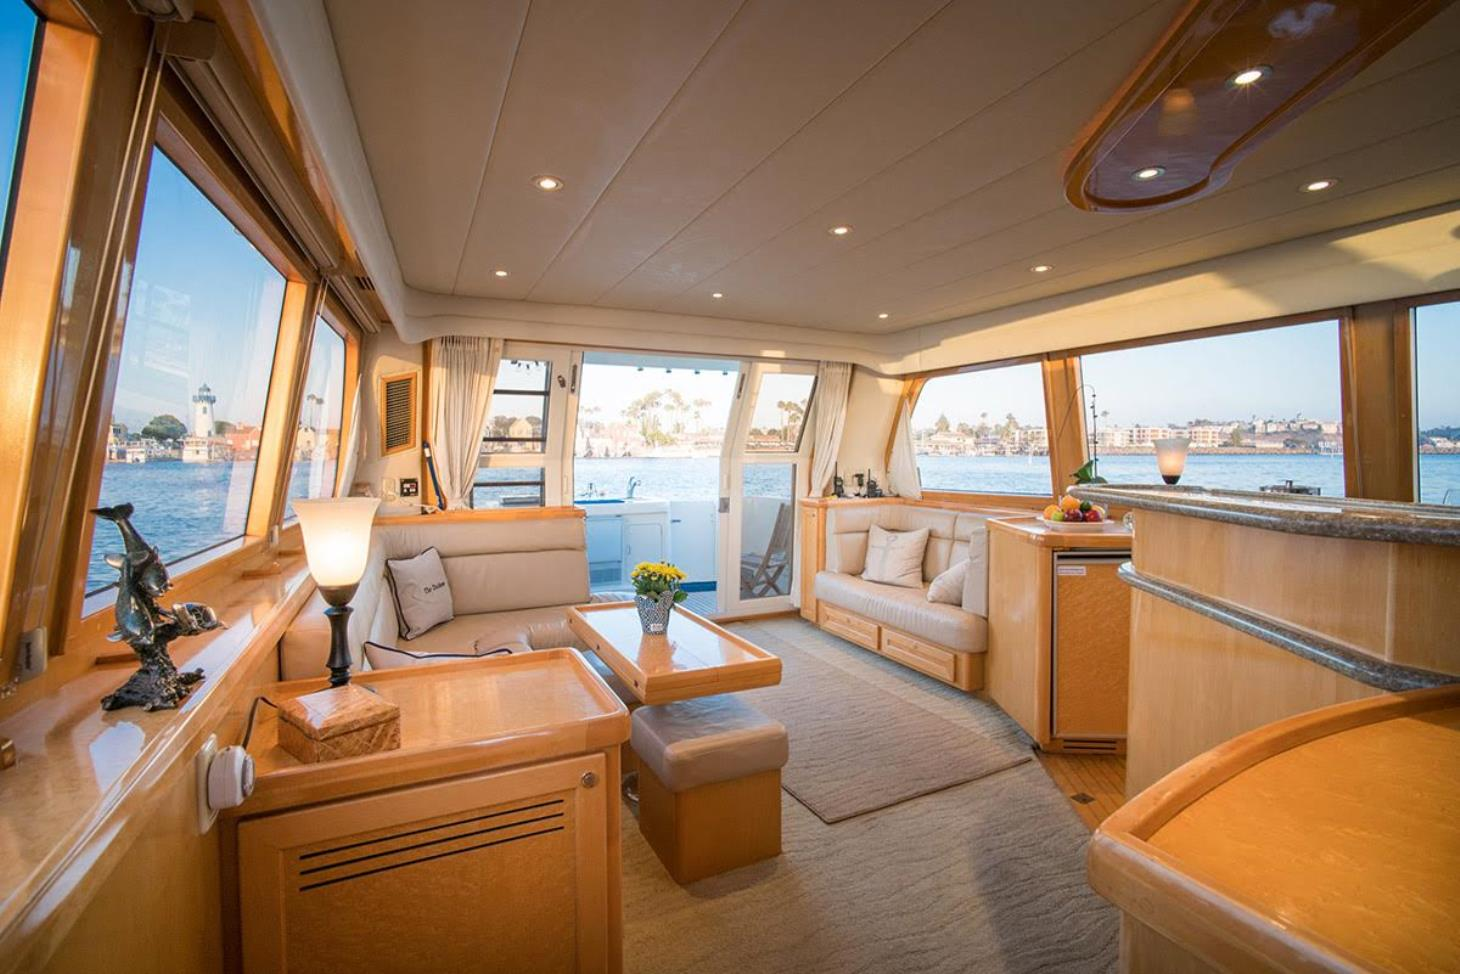 The Duchess Yacht Charter Service image 6